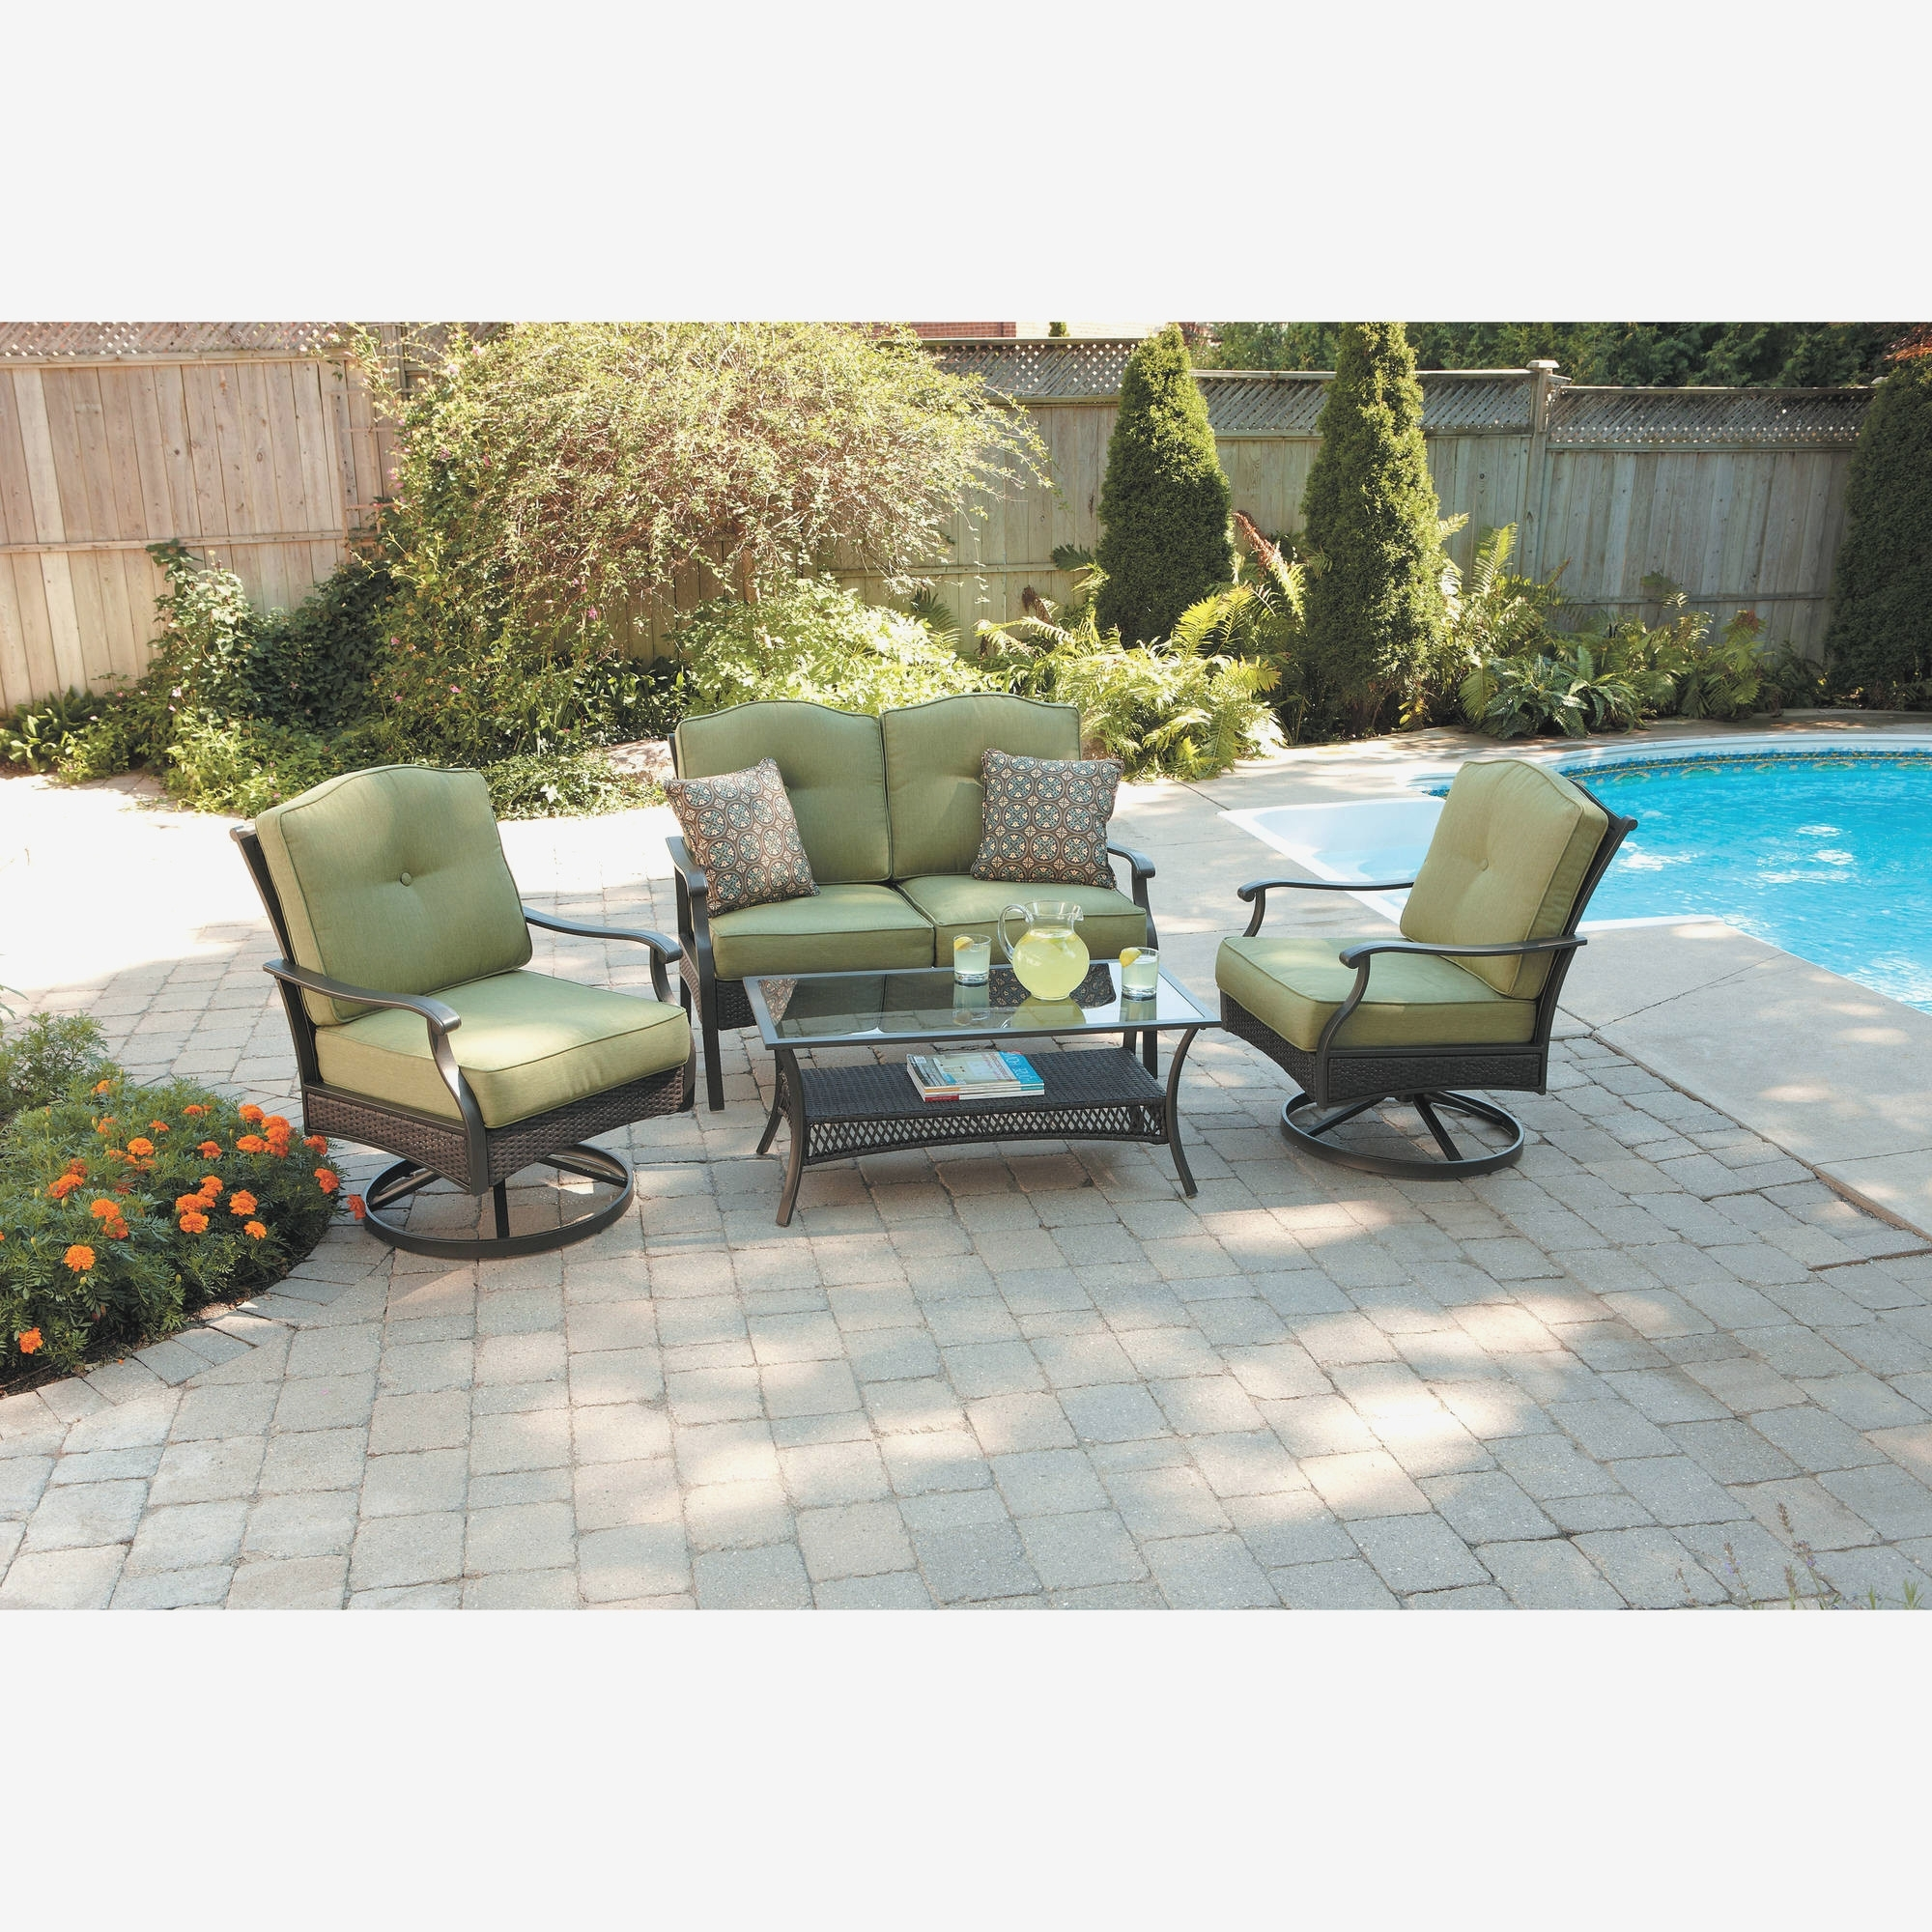 Preferred Sears Patio Furniture Conversation Sets Regarding Sears High Top Patio Furniture Awesome Sears Patio Swing Luxury (View 10 of 20)